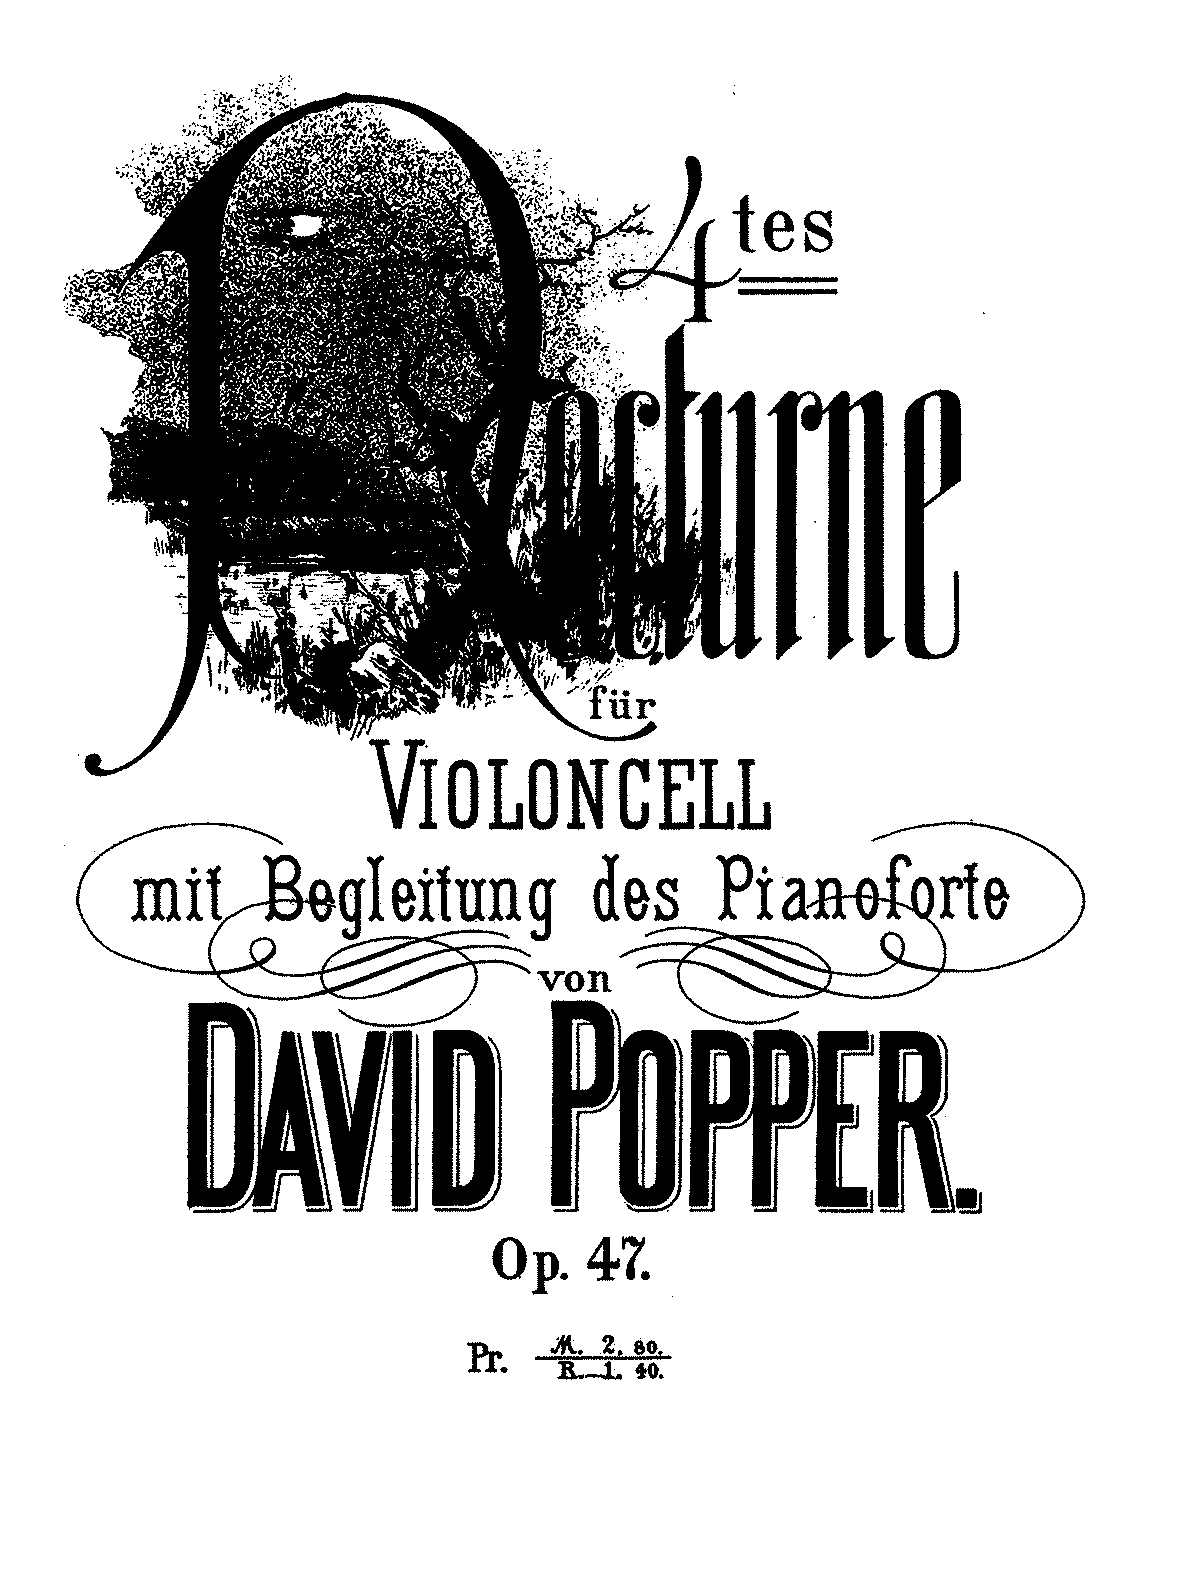 PMLP211574-Popper - Nocturne No4 for Cello and Piano Op47 pno.pdf